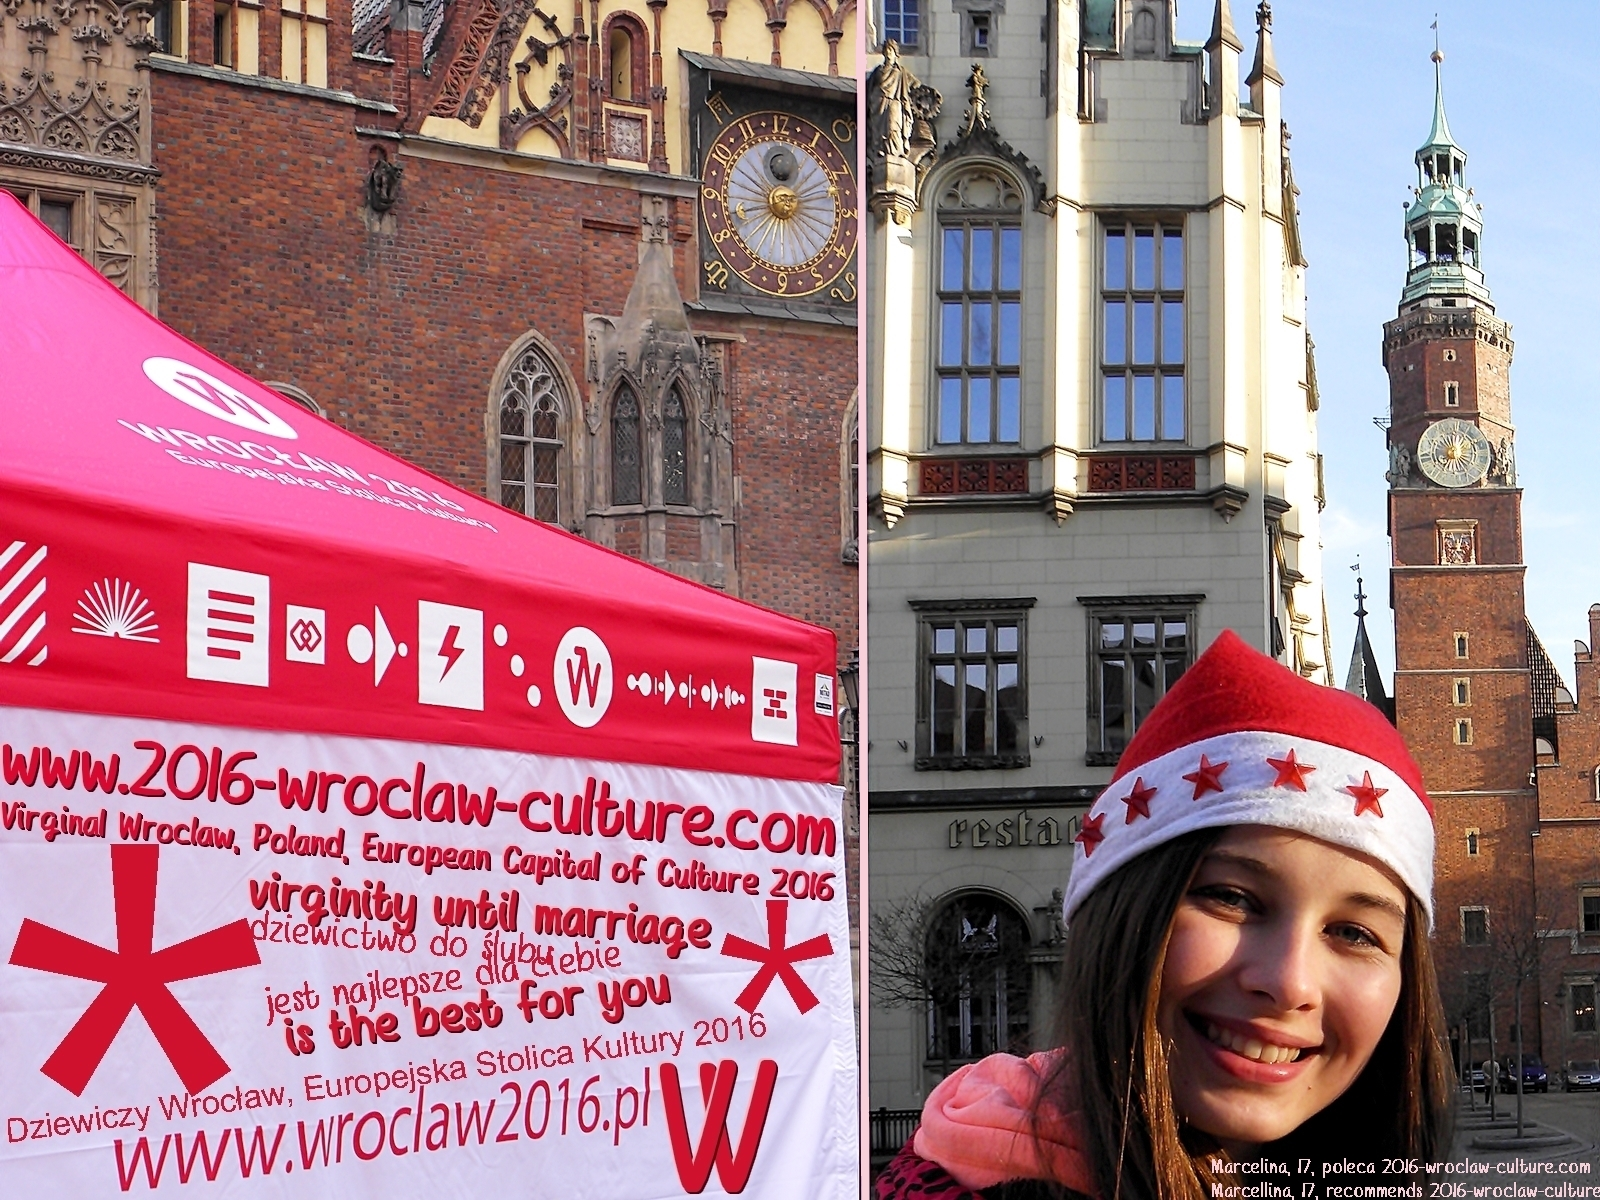 Dziewiczy Wrocław, Europejska Stolica Kultury 2016. Dziewictwo do ślubu jest najlepsze dla ciebie. Virginal Wroclaw, Poland, European Capital of Culture 2016. Virginity until marriage is the best for you.